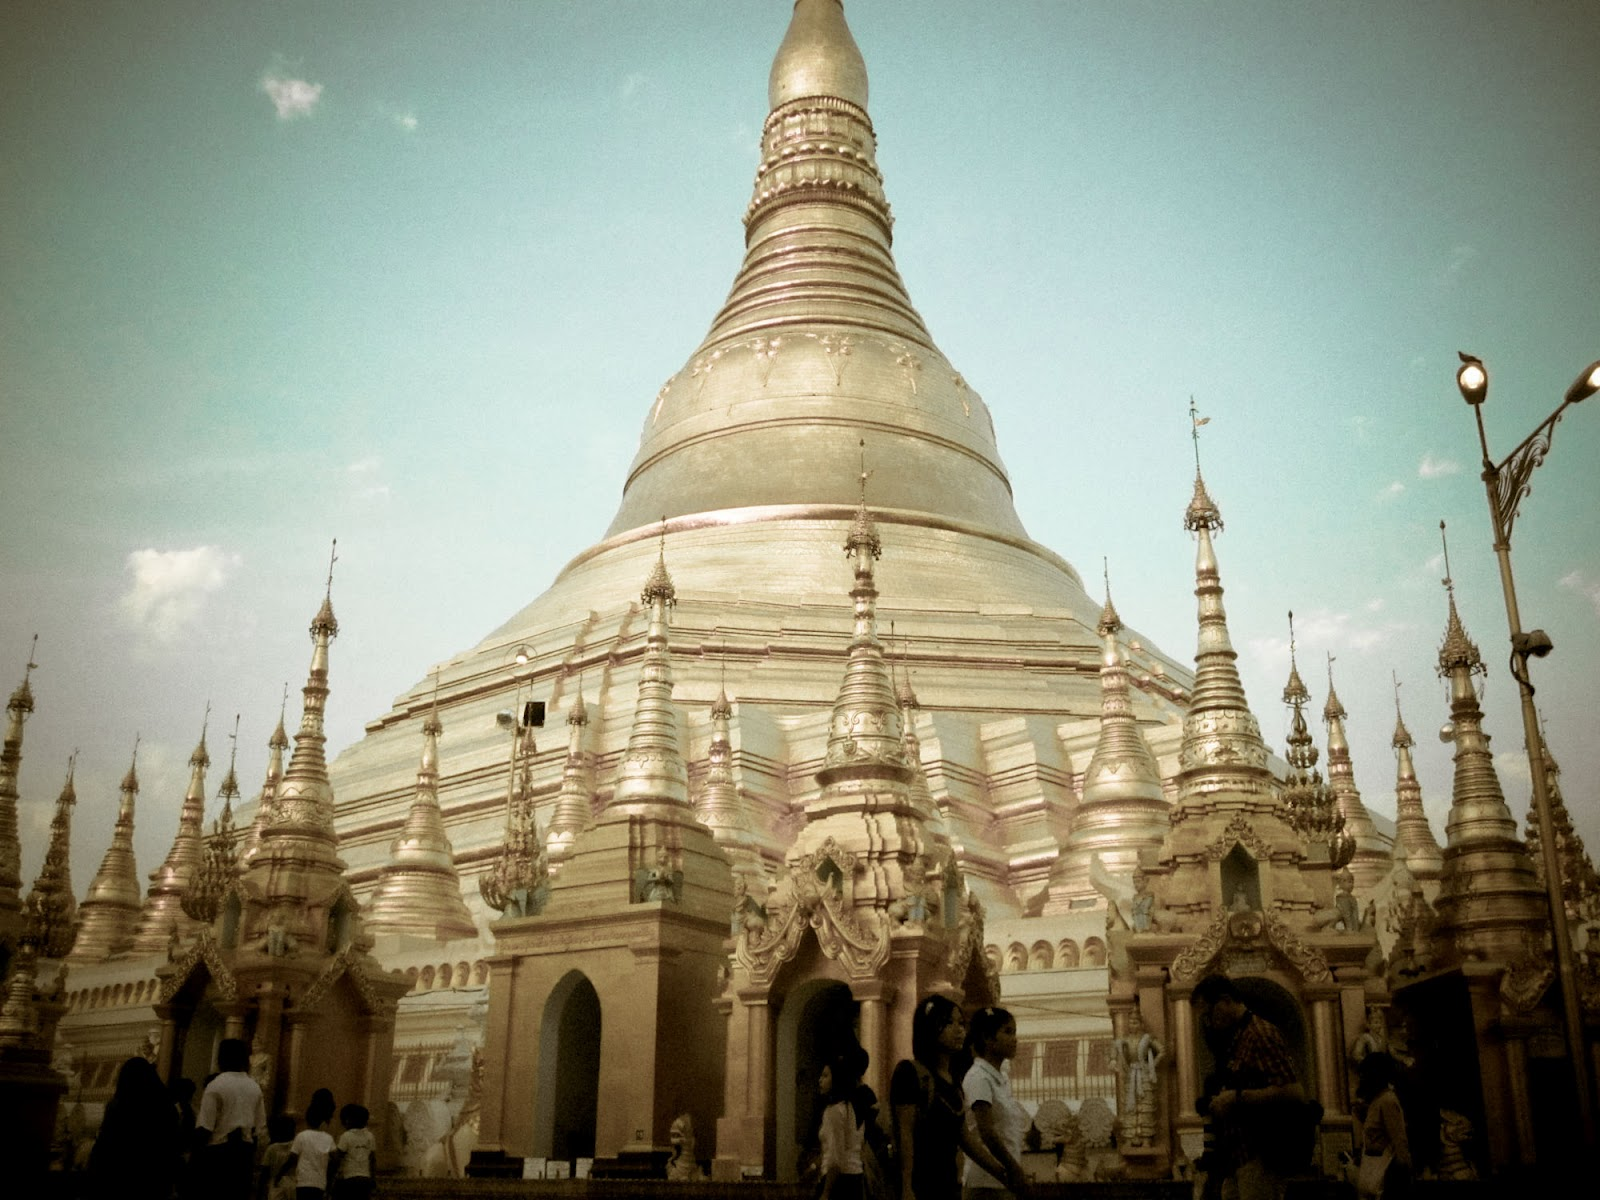 burmese days essay Free burmese days papers, essays, and research papers.